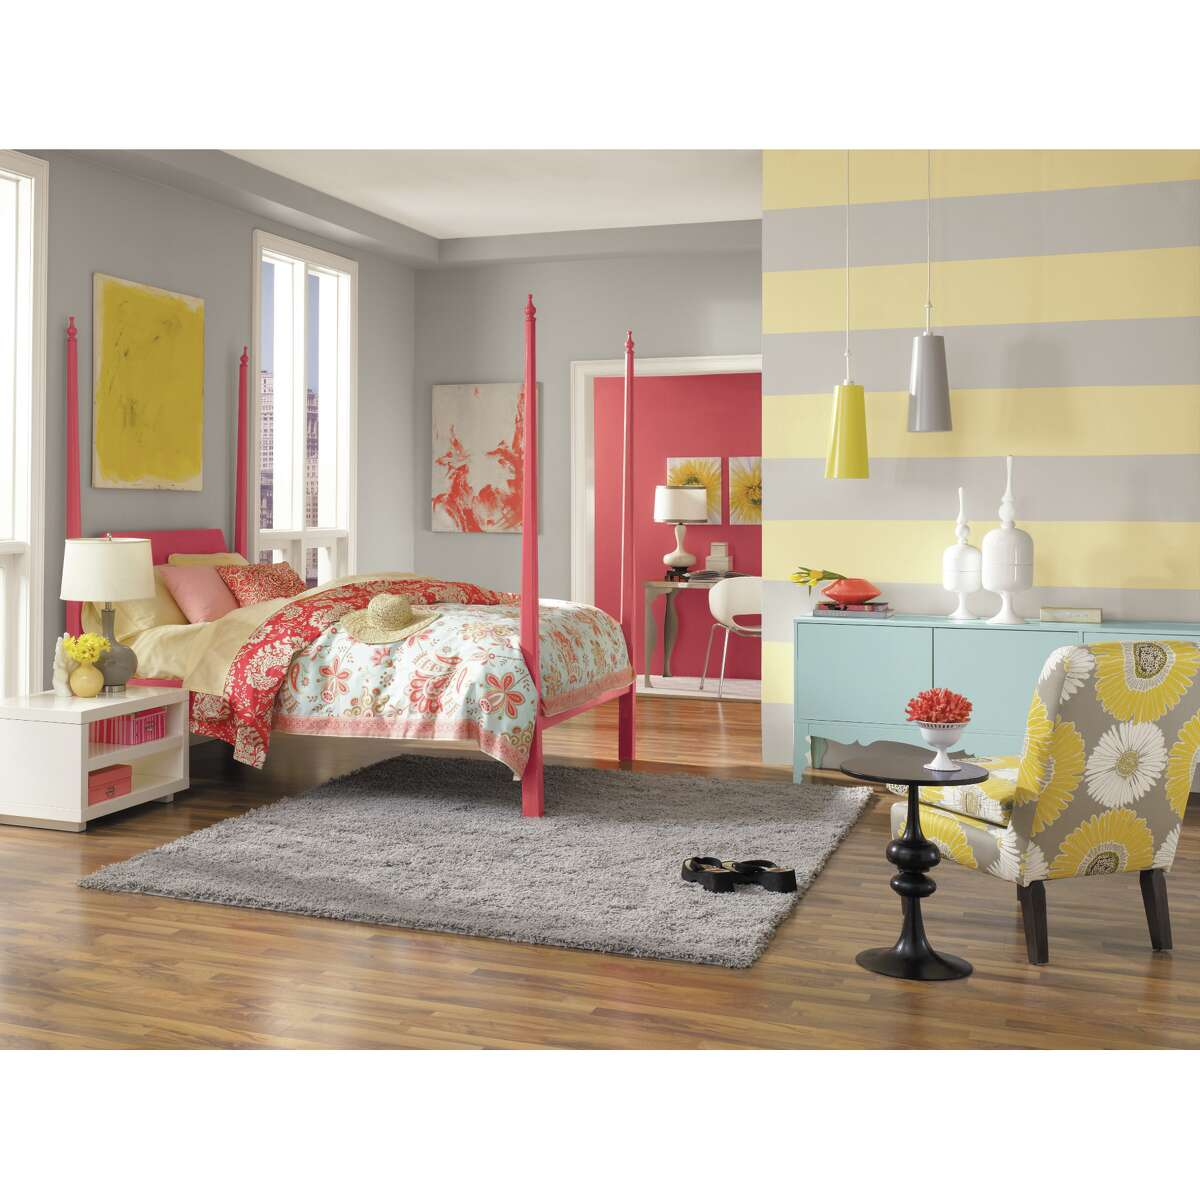 """""""Illuminating"""" (yellow) and """"Ultimately Gray""""are Pantone's 2021 Colors of the Year. Paint company Sherwin-Williams offers two paint colors that are good matches: """"Moonraker"""" (yellow) and """"Pearl Gray."""""""